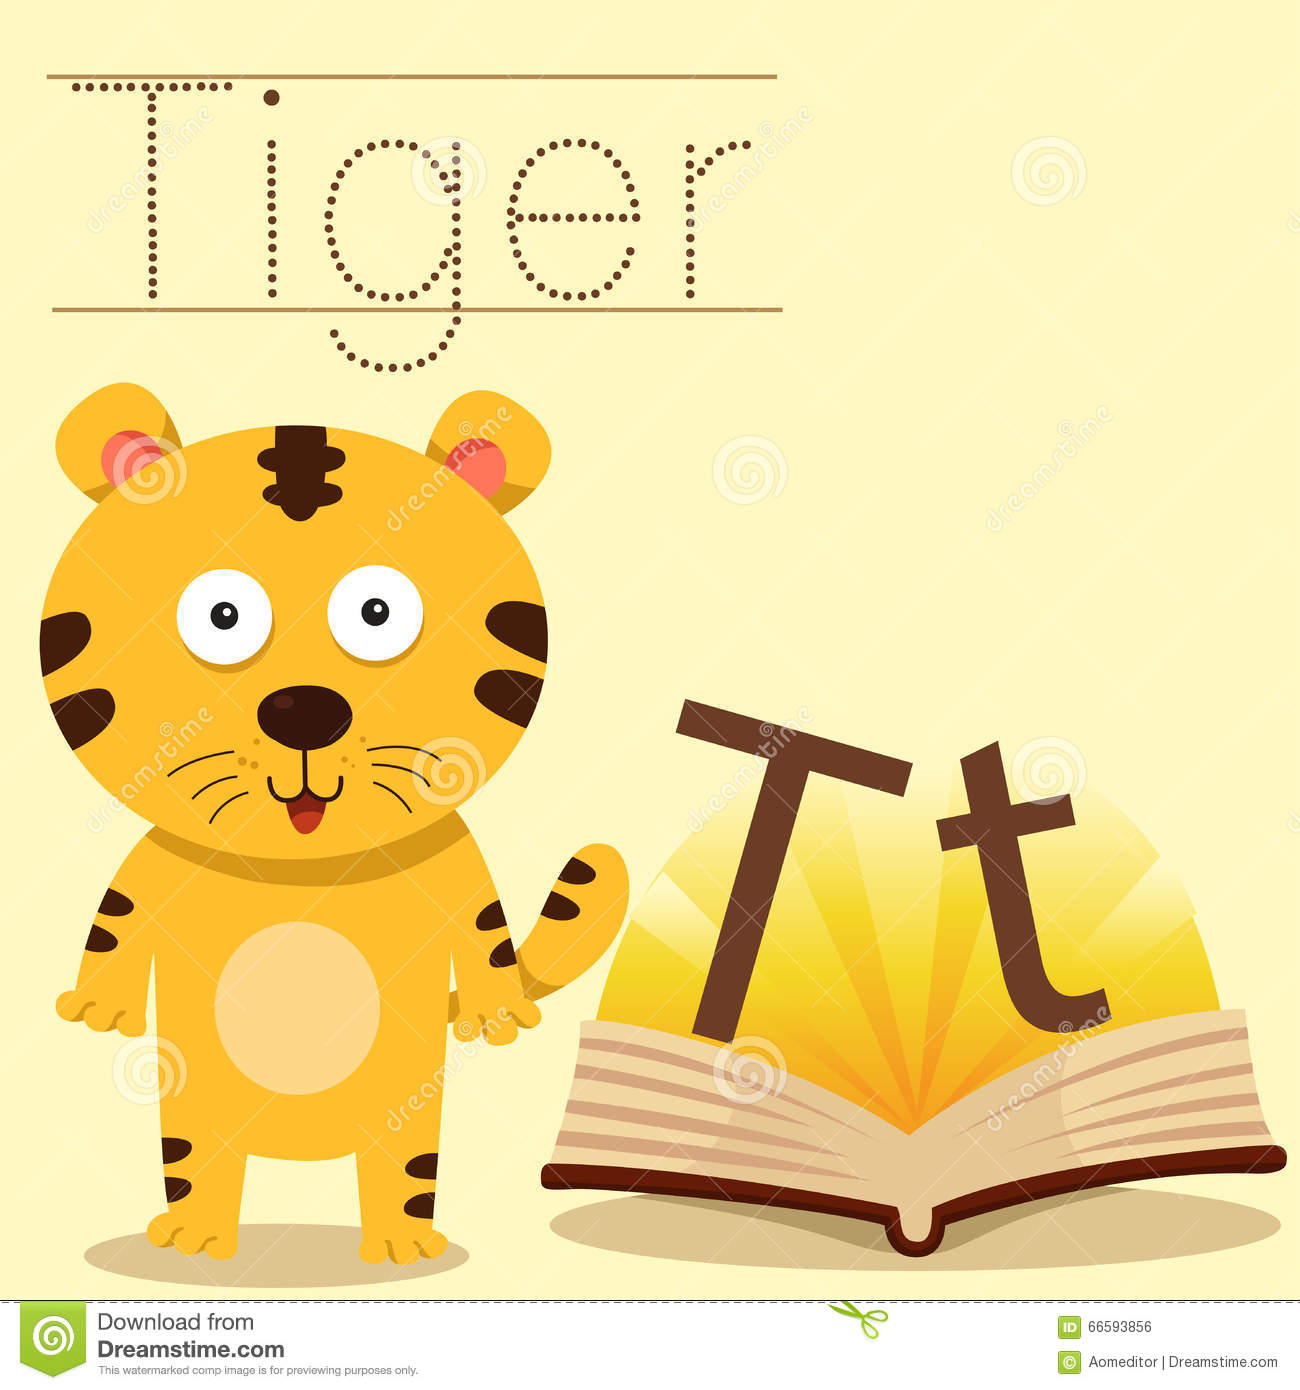 Illustrator Of T For Tiger Vocabulary Stock Vector